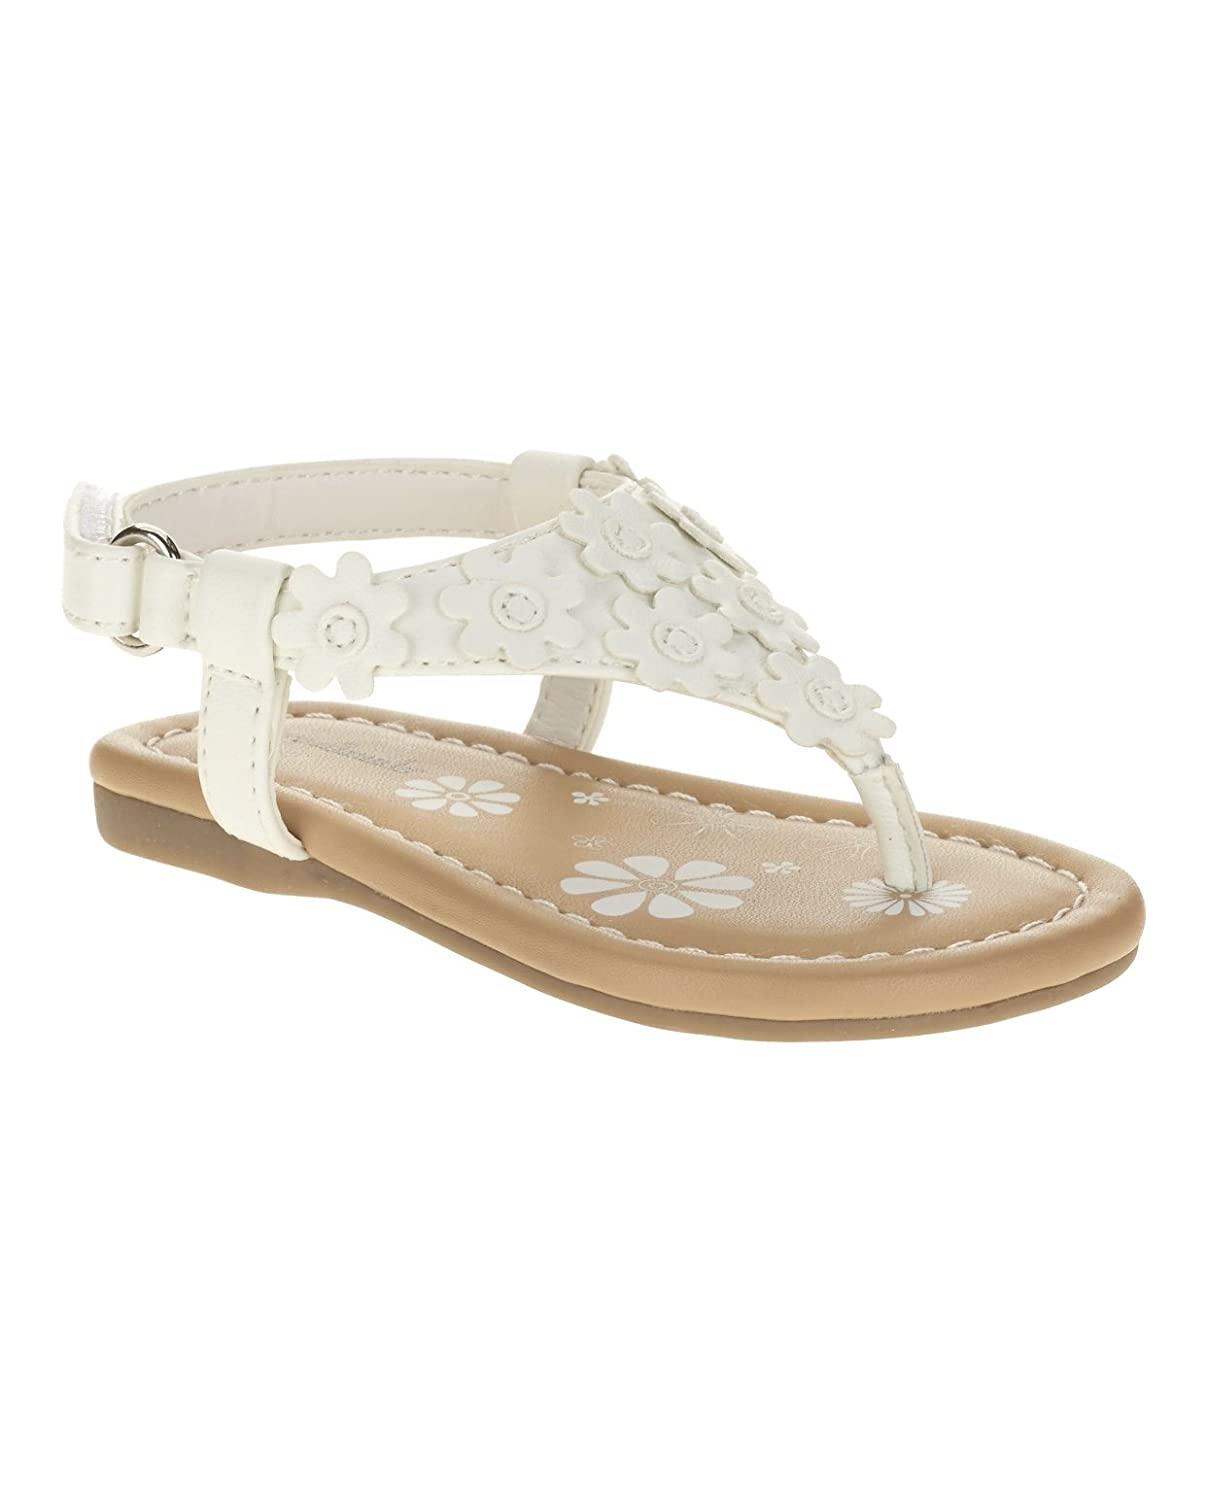 5a165f2e5ec16 Amazon.com | Garanimals Infant and Toddler White Flower Sandals ...